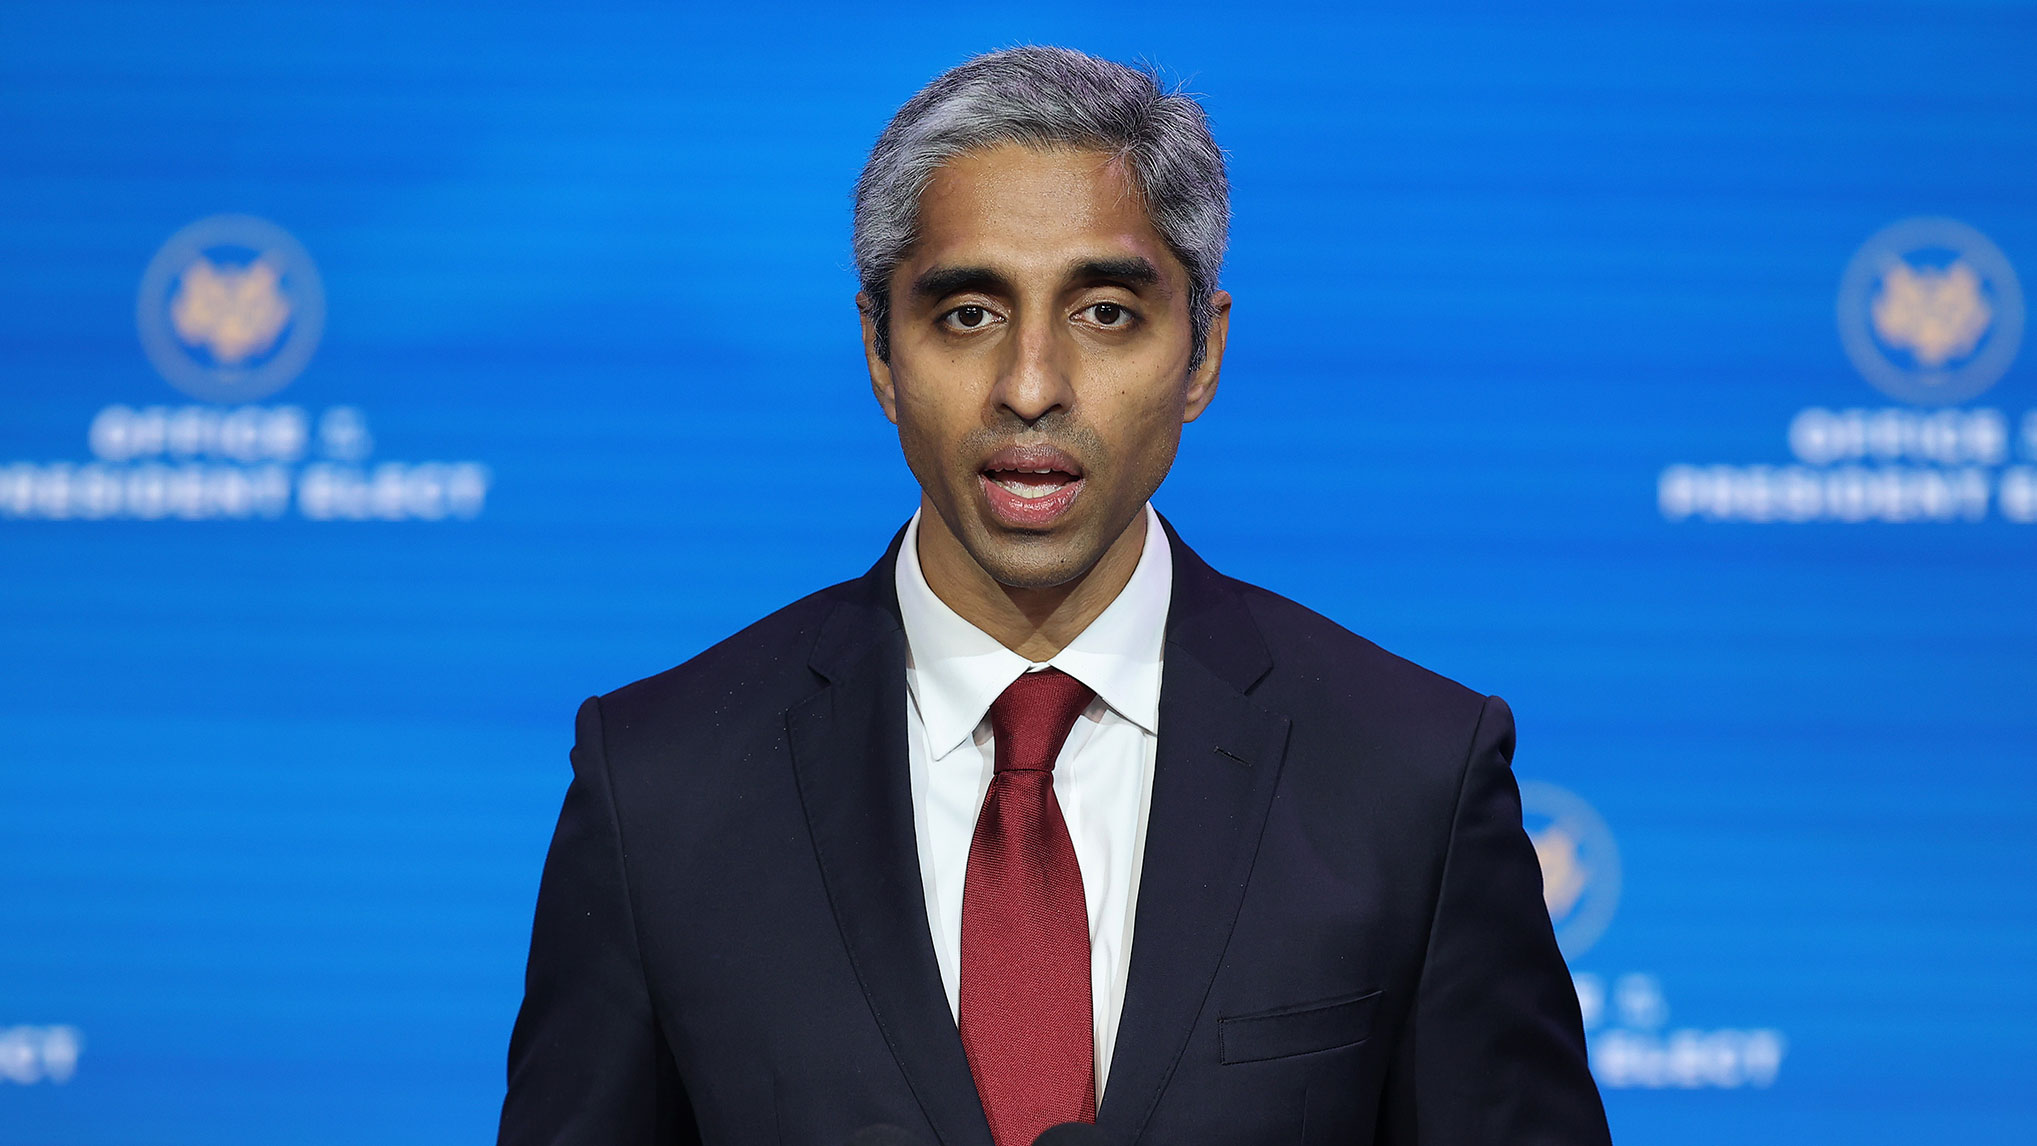 Dr. Vivek Murthy, President-elect Joe Biden's pick to be US surgeon general, speaks during a news conference at the Queen Theater December 8 in Wilmington, Delaware.